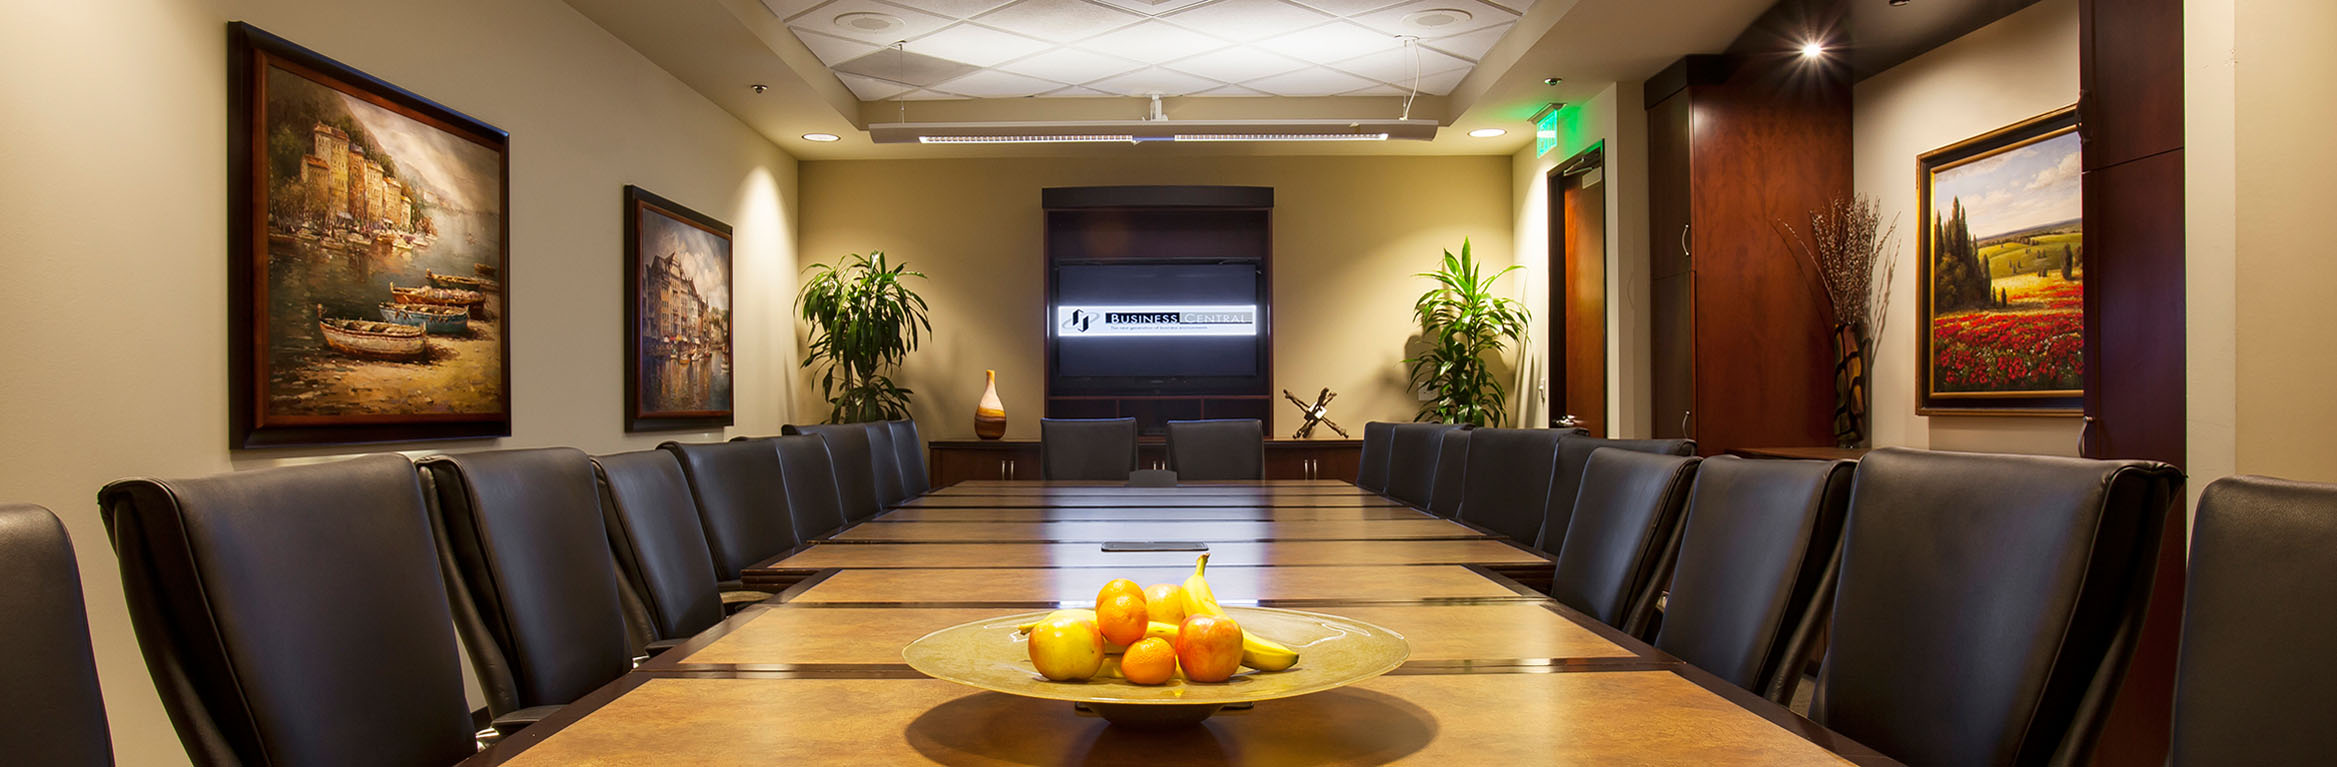 Board room meeting rooms in Sacramento